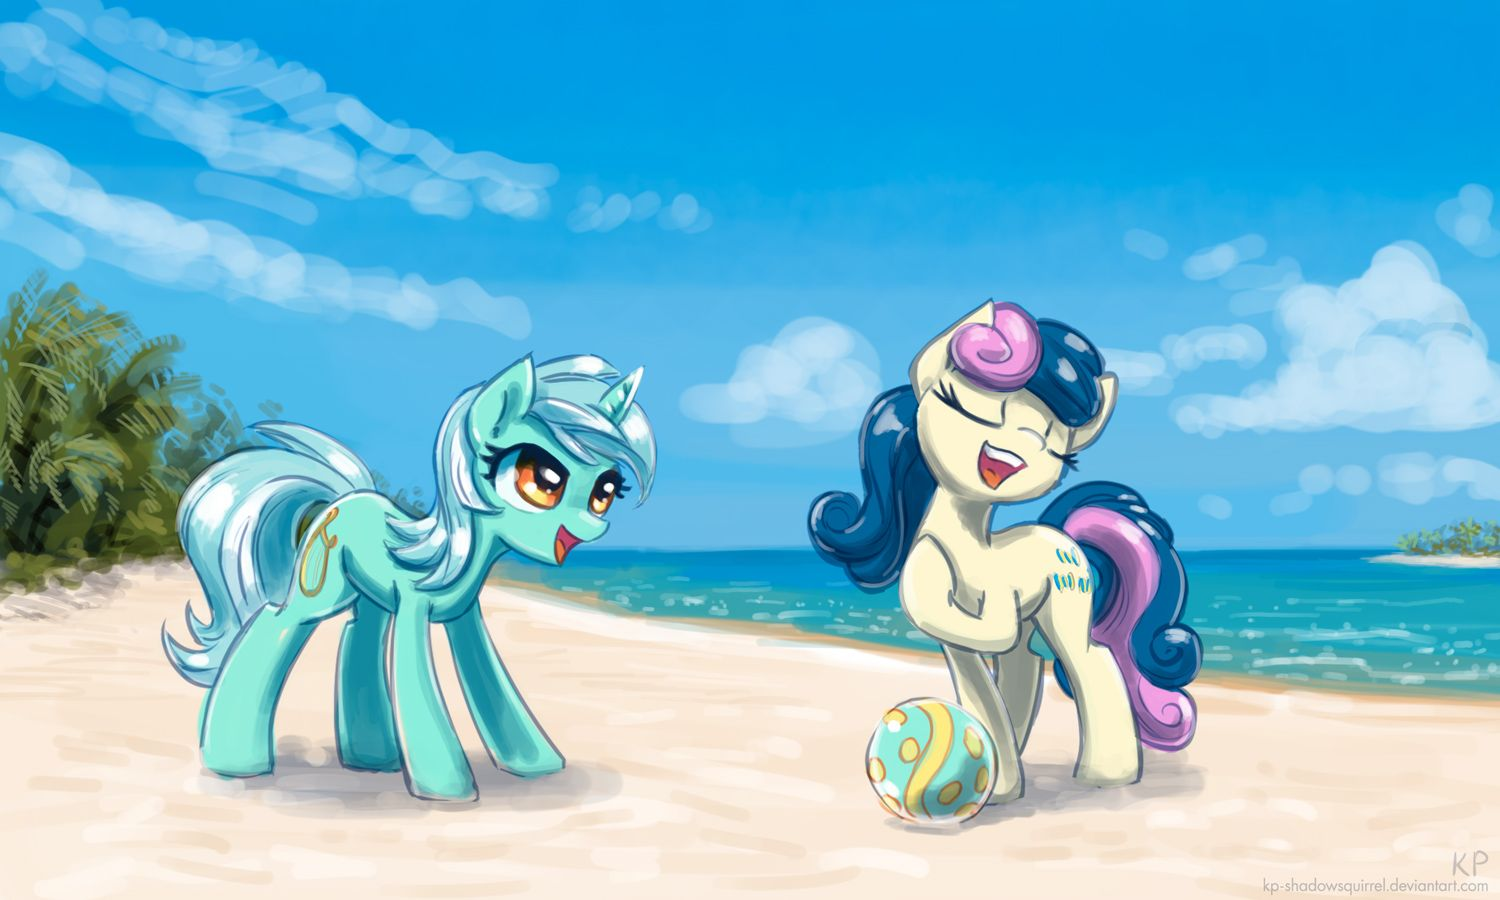 Lyra and Bon Bon at the beach by KP-ShadowSquirrel on deviantART | My  little pony drawing, My little pony wallpaper, My little pony friendship